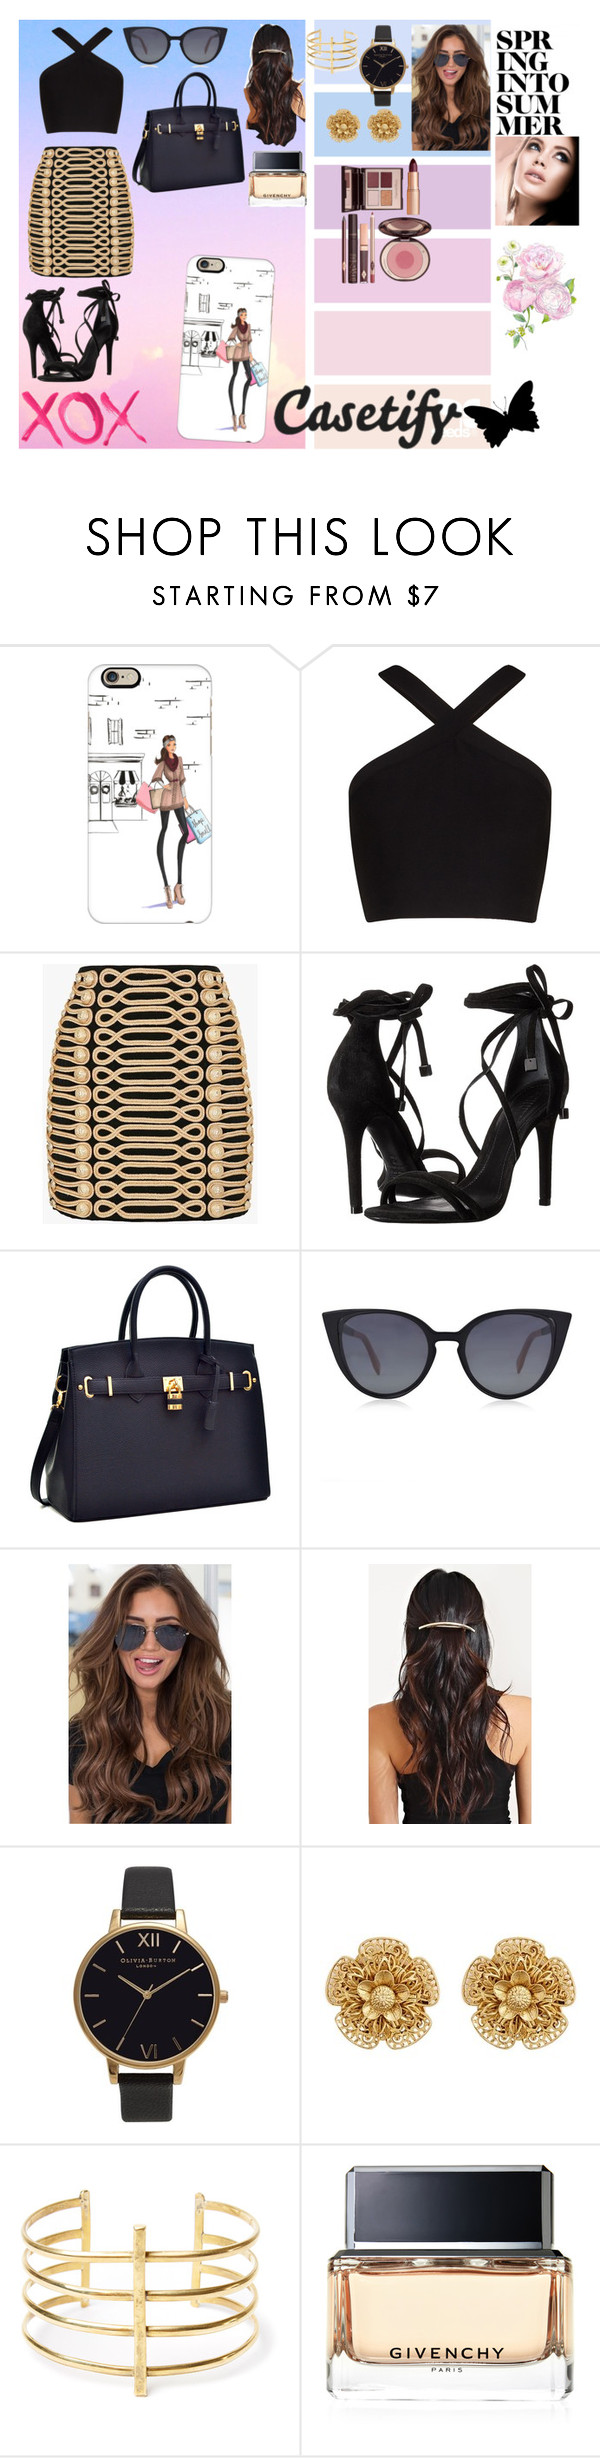 """casetify"" by omaduviemaya on Polyvore featuring Casetify, BCBGMAXAZRIA, Balmain, Schutz, GALA, Fendi, Olivia Burton, Miriam Haskell, BauXo and Givenchy"